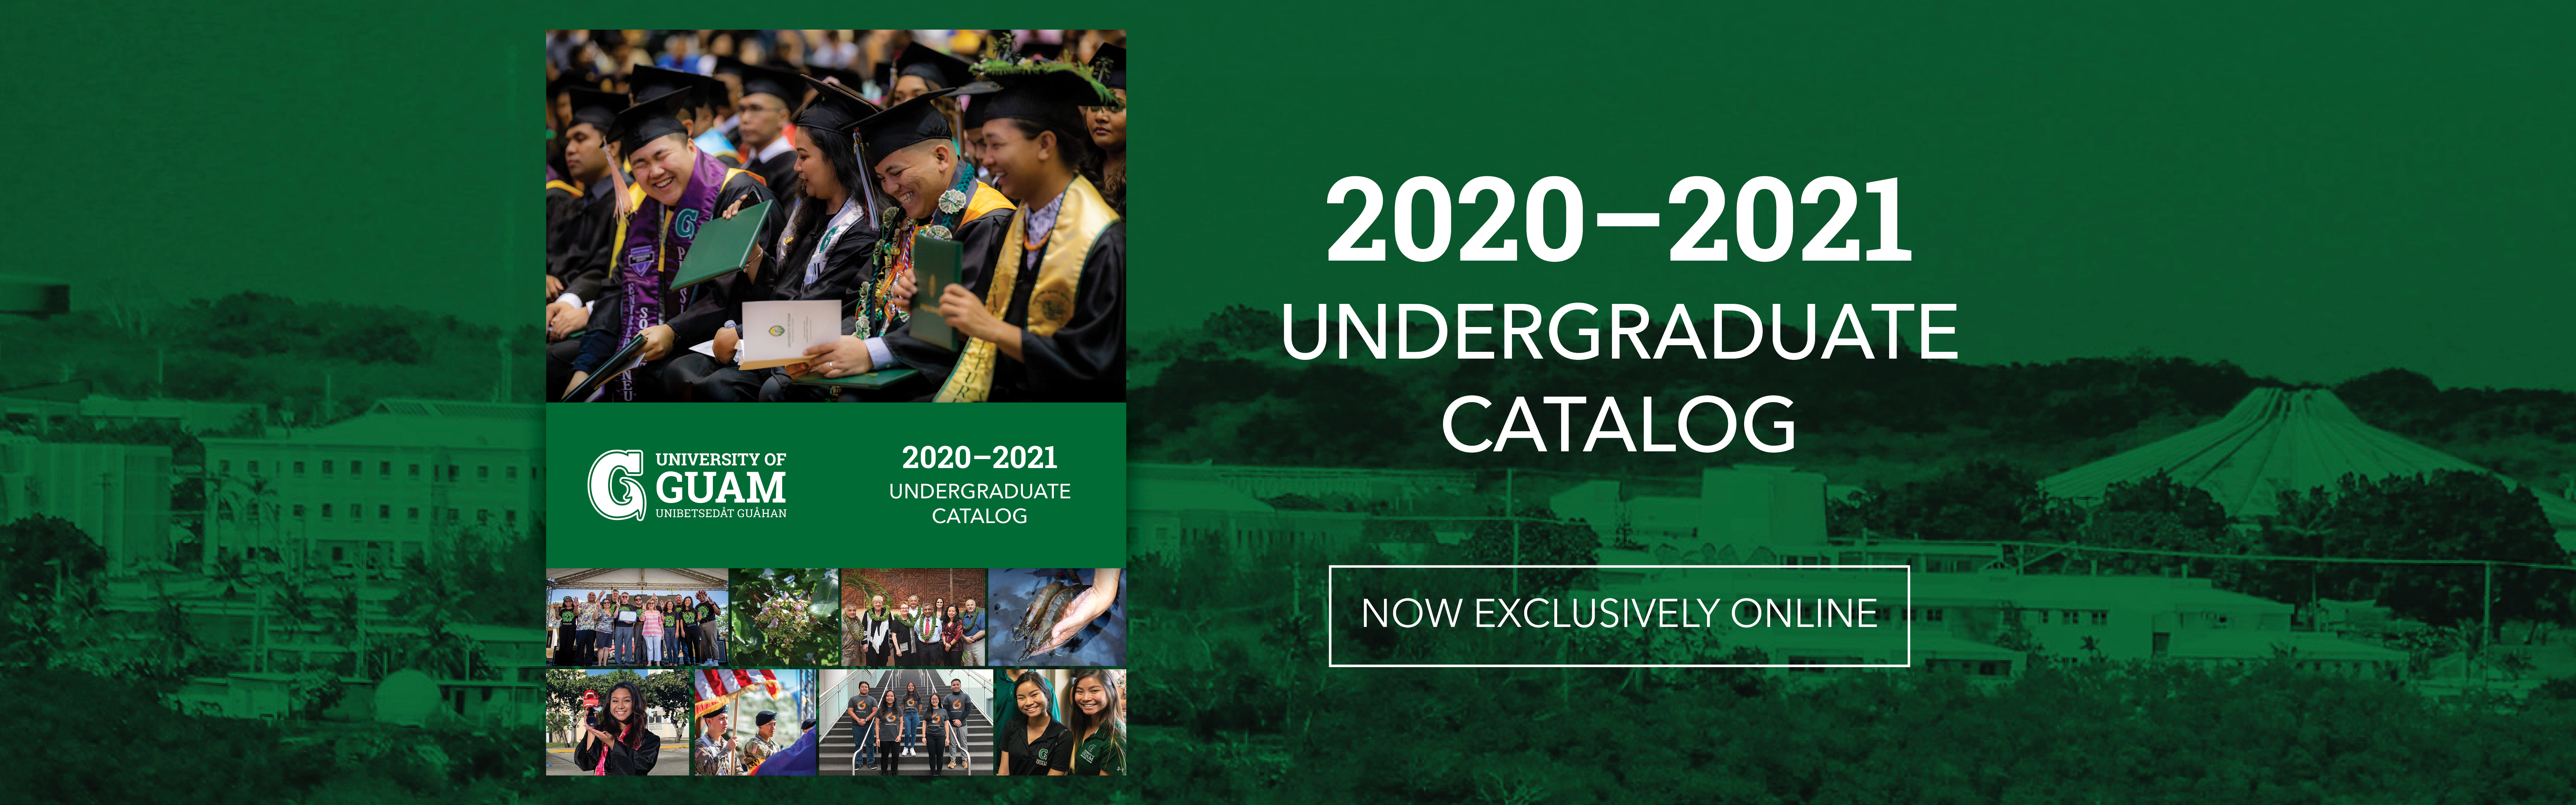 Click to see the 2020-2021 UOG Catalog